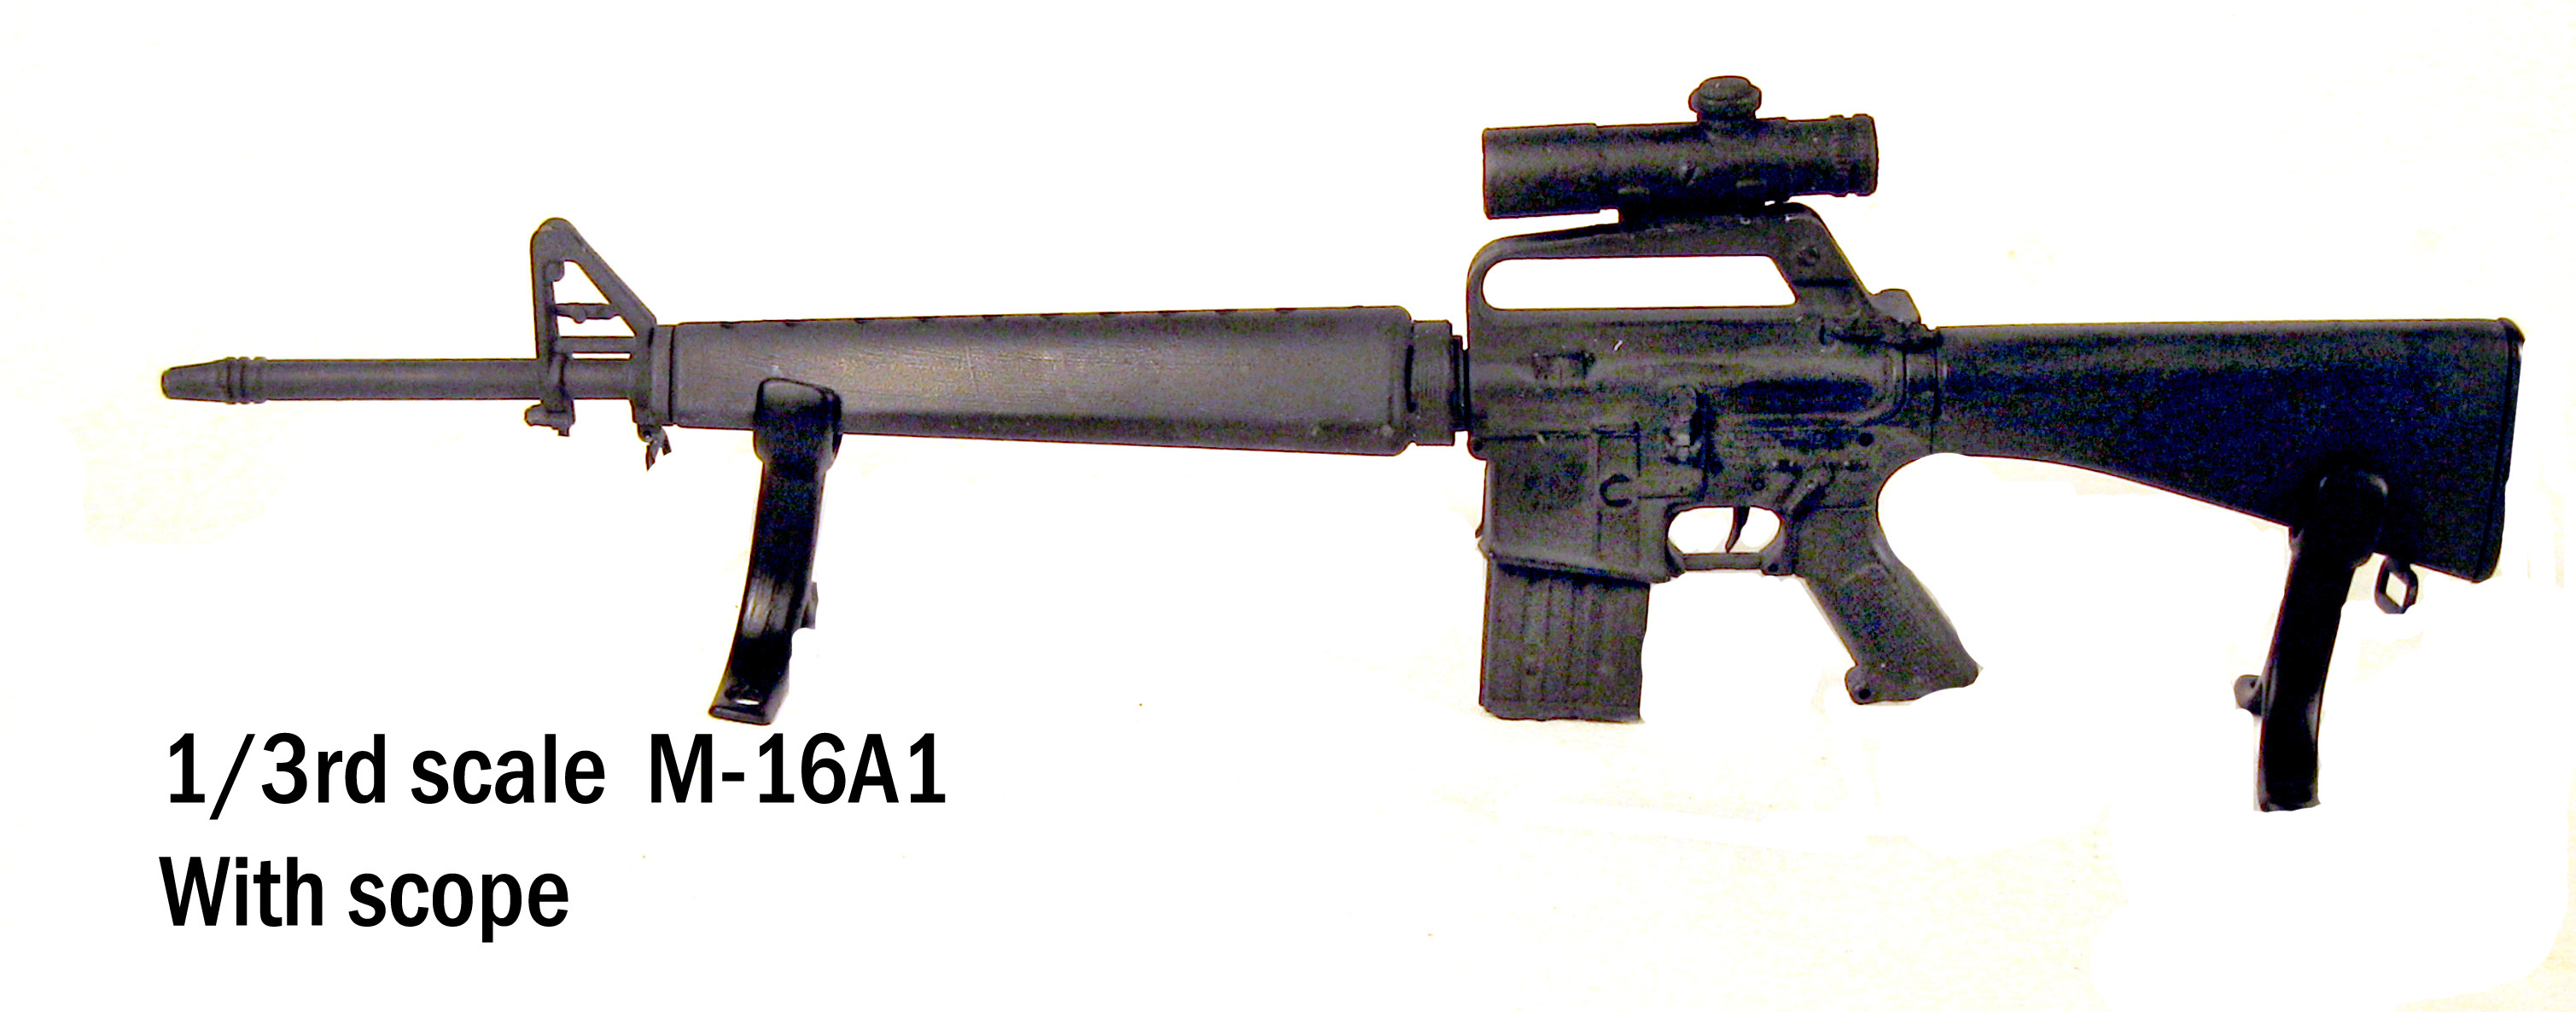 M-16A1 rifle with scope - Click Image to Close